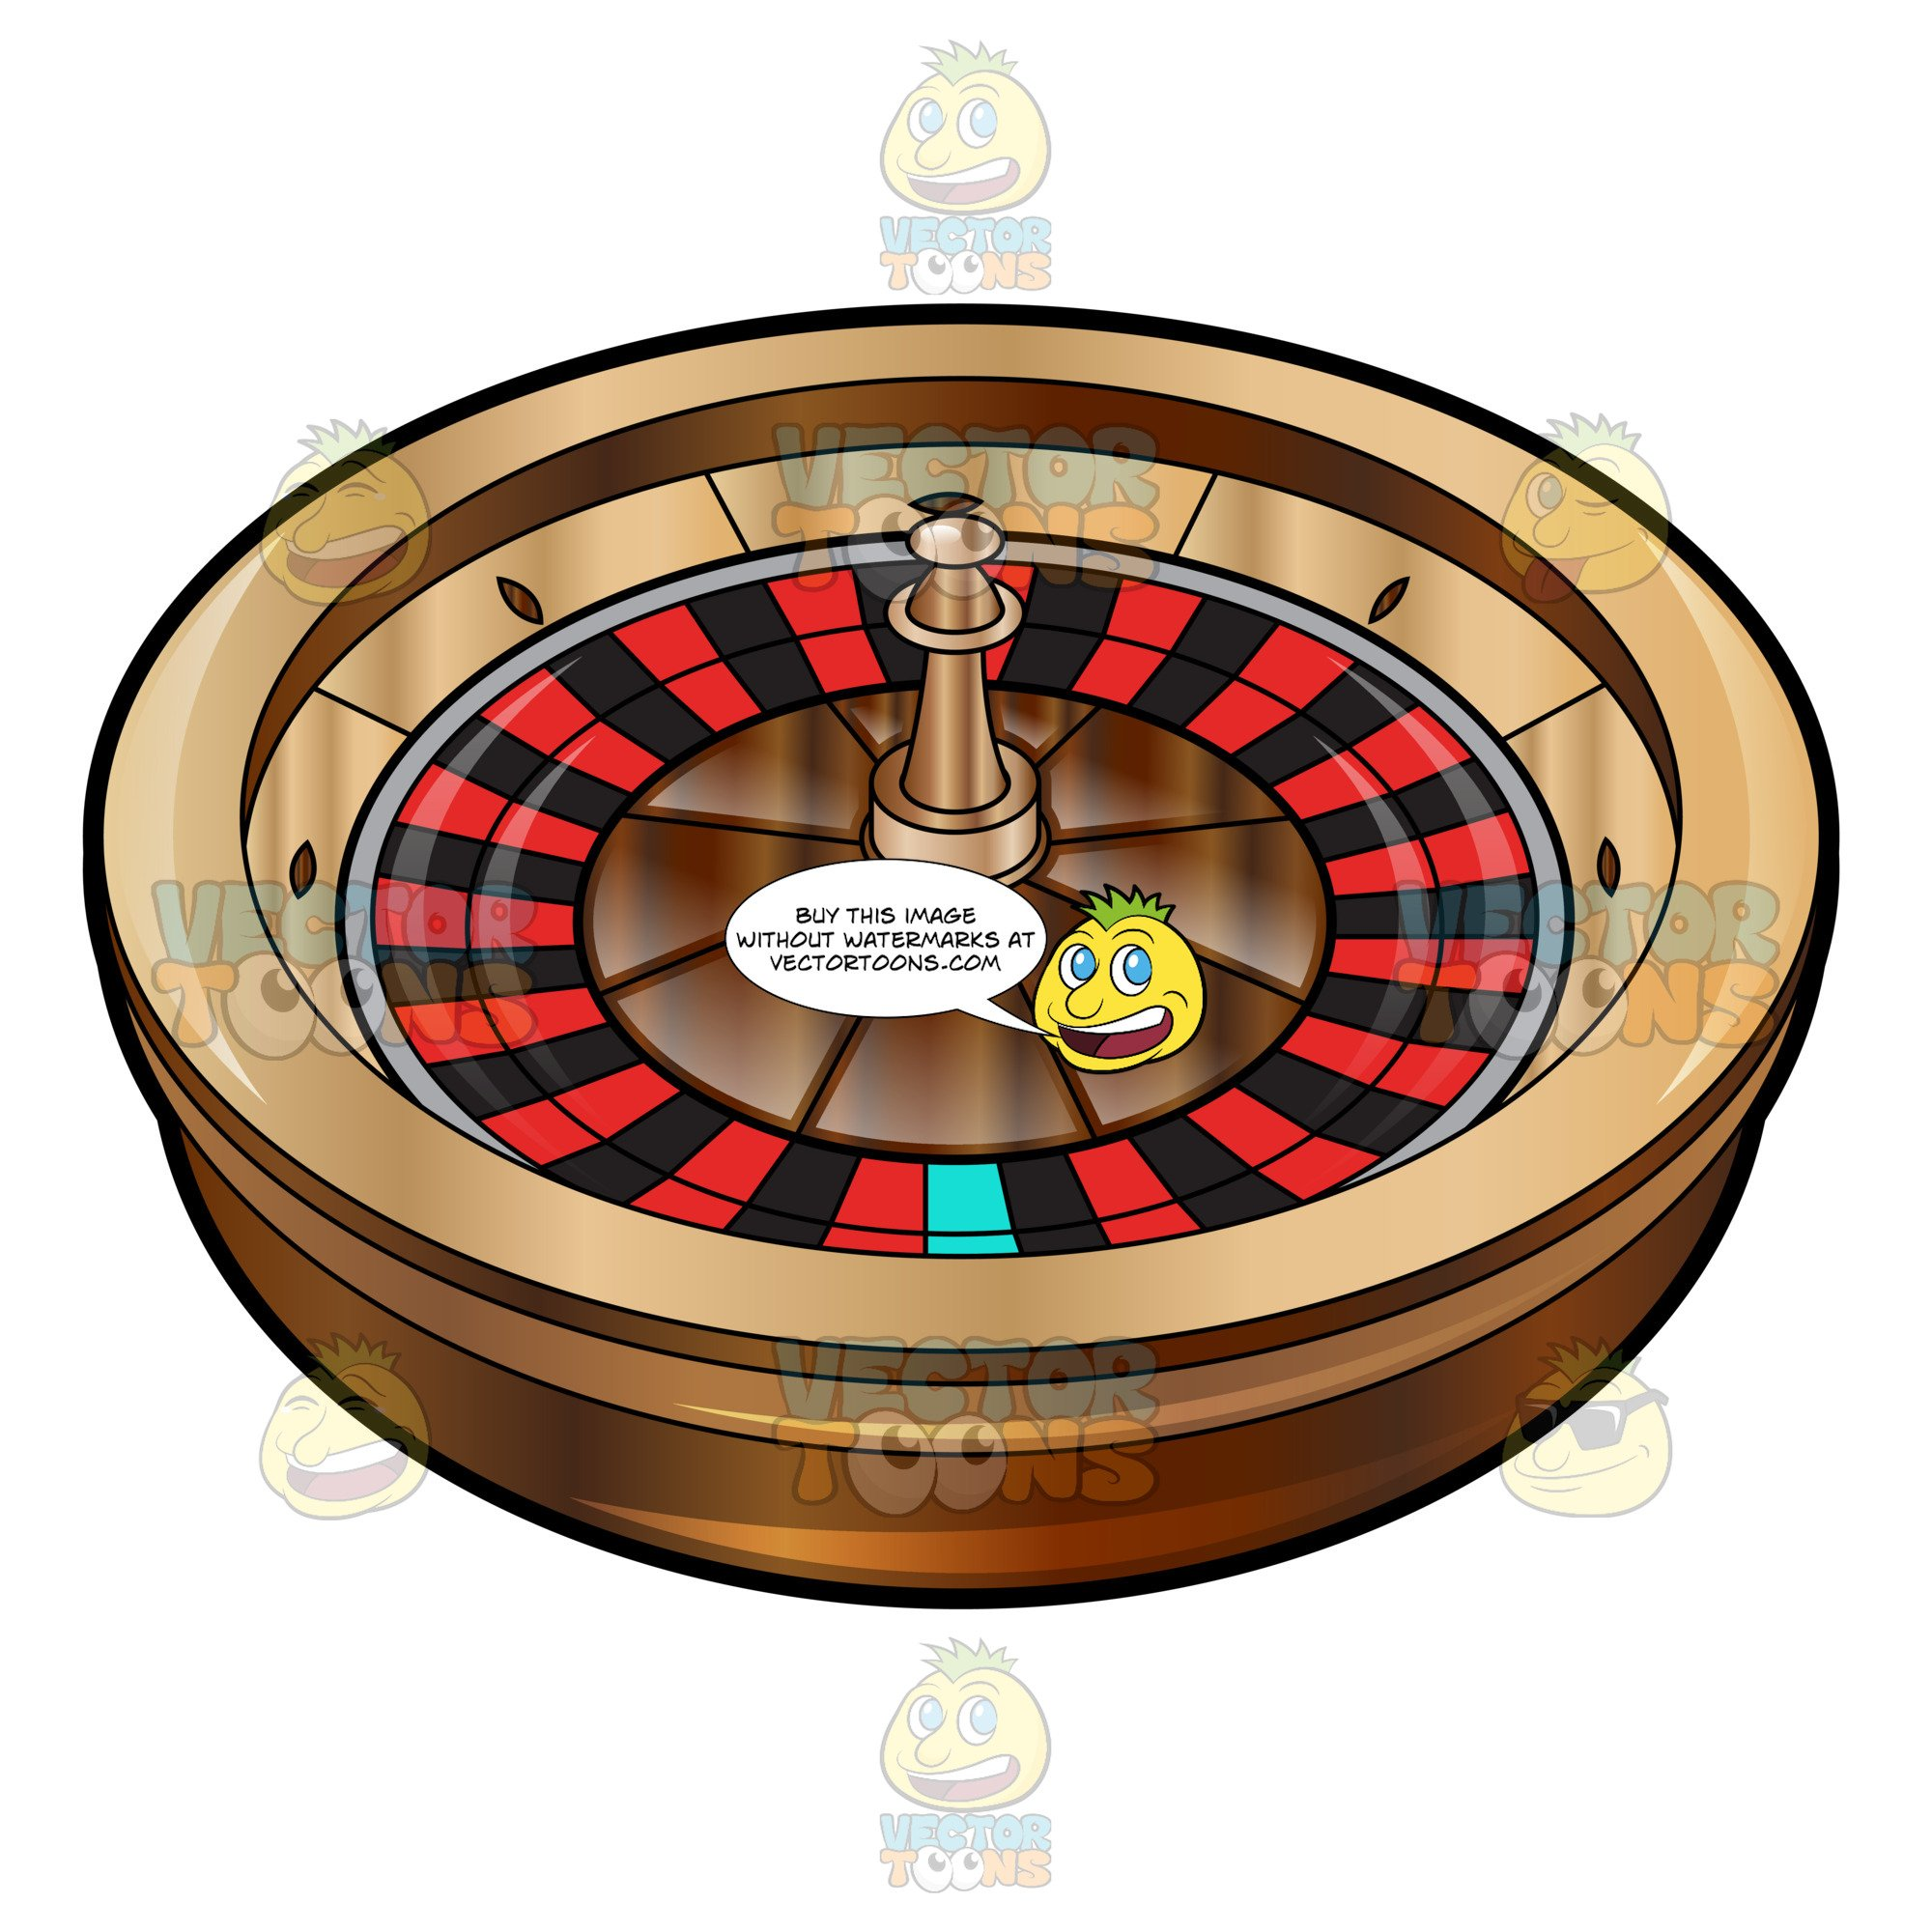 Roulette table clipart vector black and white stock Basic Roulette Turn Wheel vector black and white stock